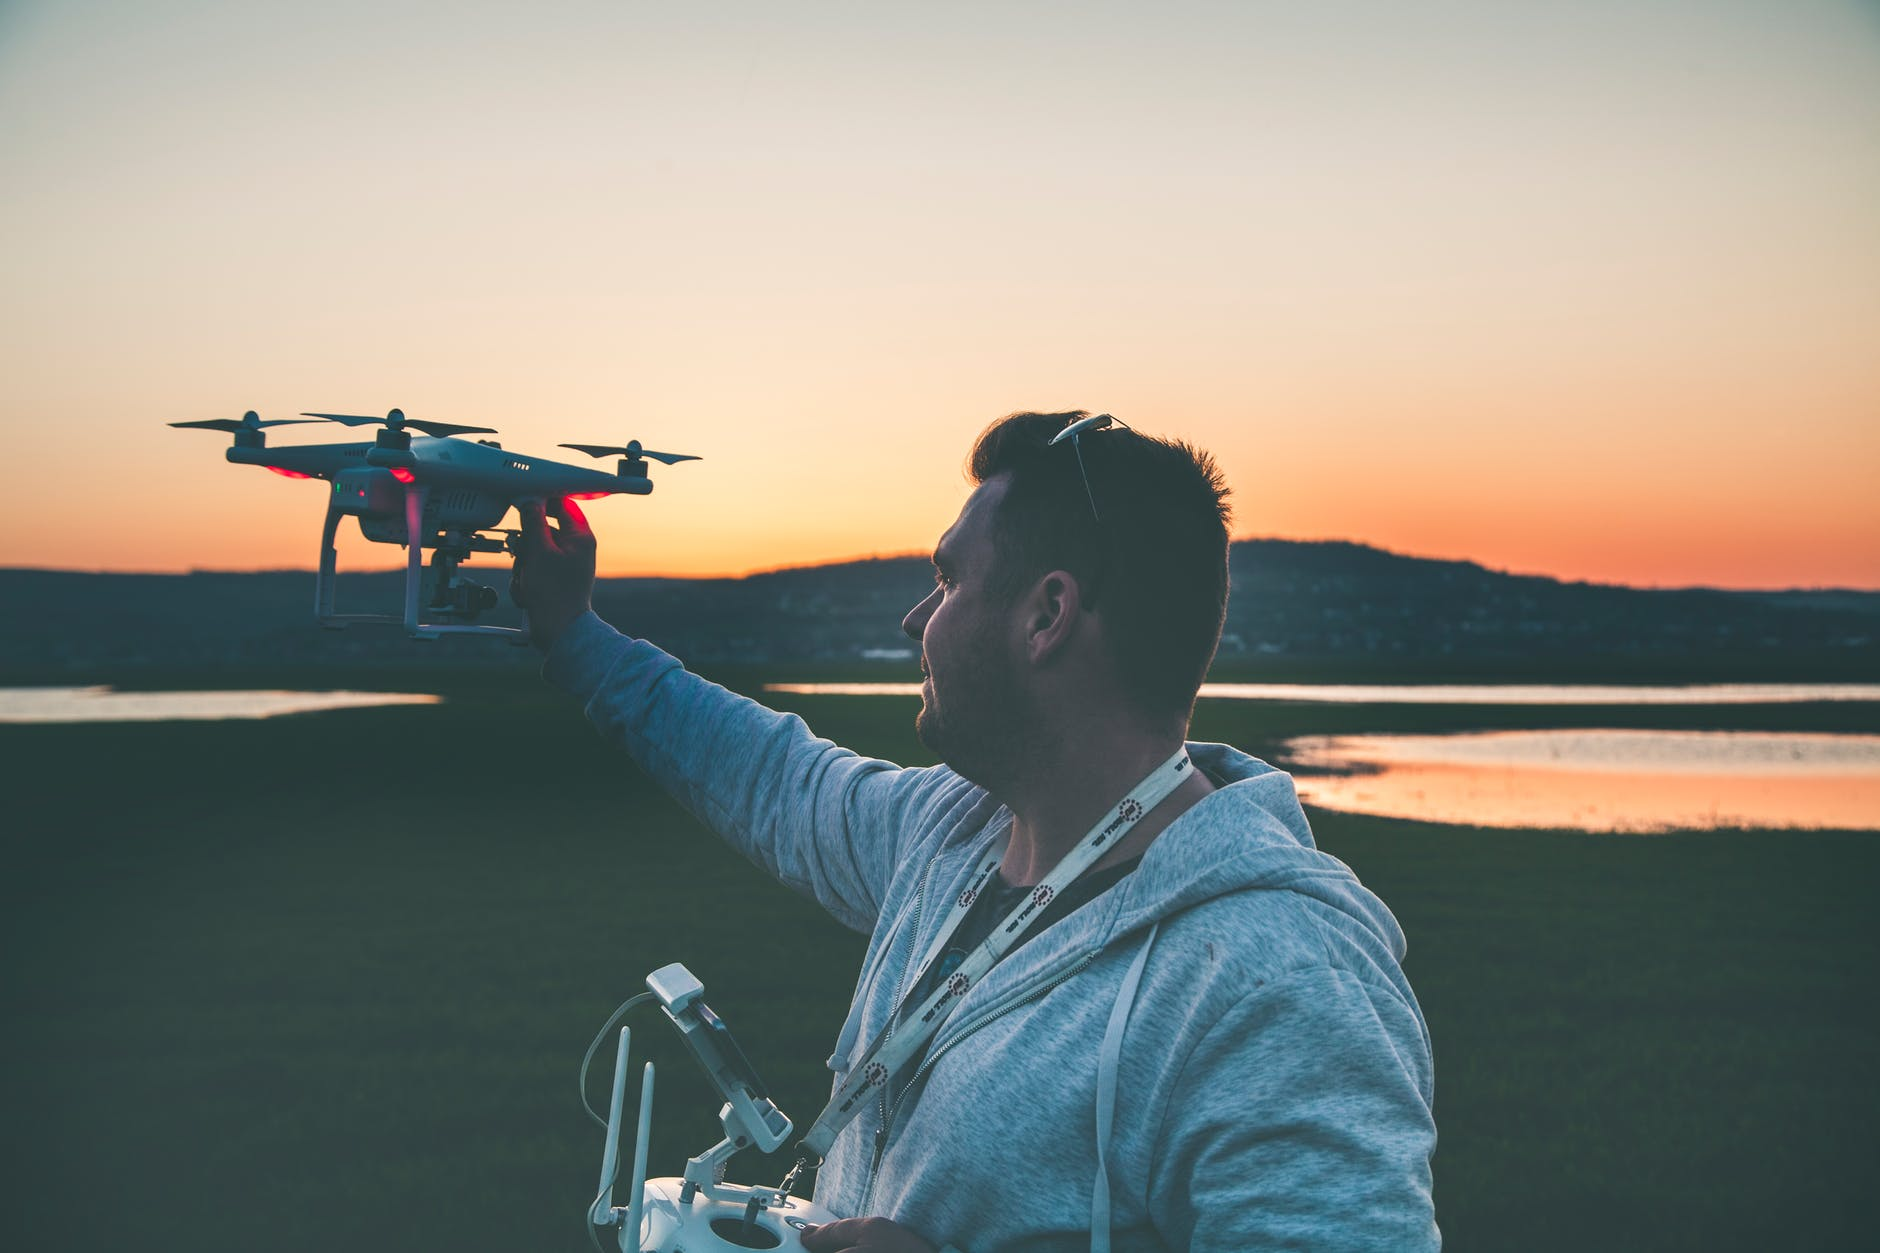 Choosing the right person to control the drone